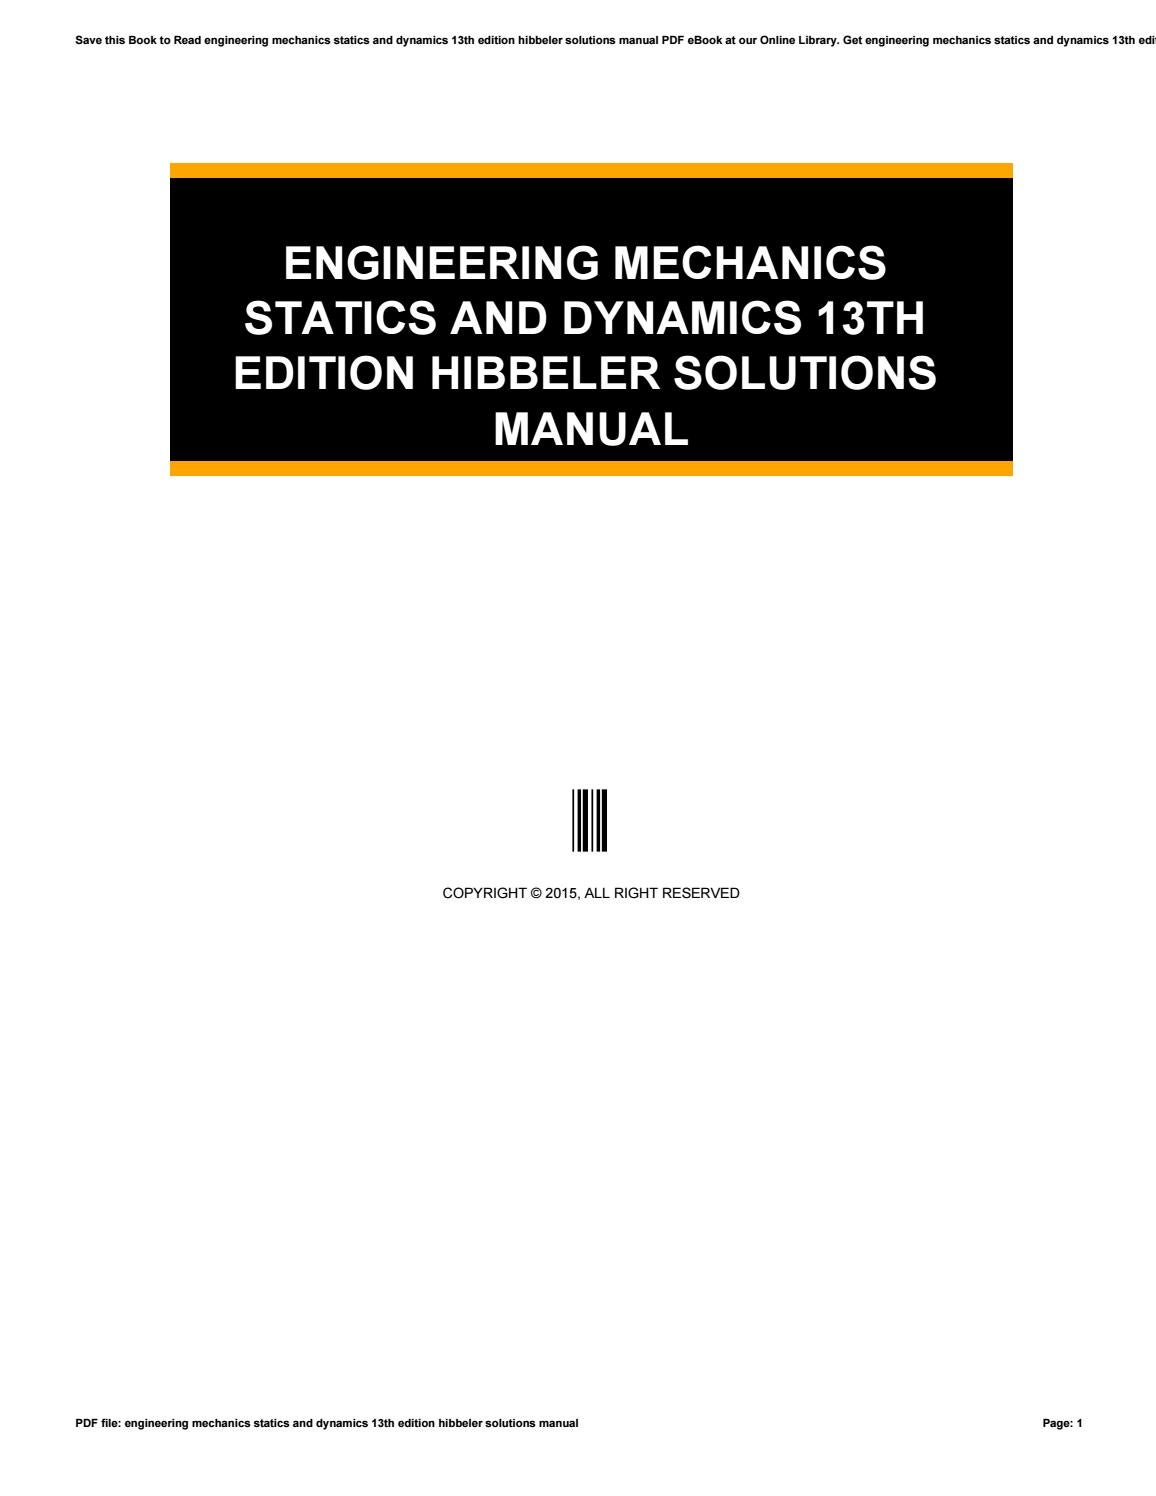 Engineering Mechanics Statics And Dynamics 13th Edition Hibbeler Solutions  Manual by mo3671880 - issuu